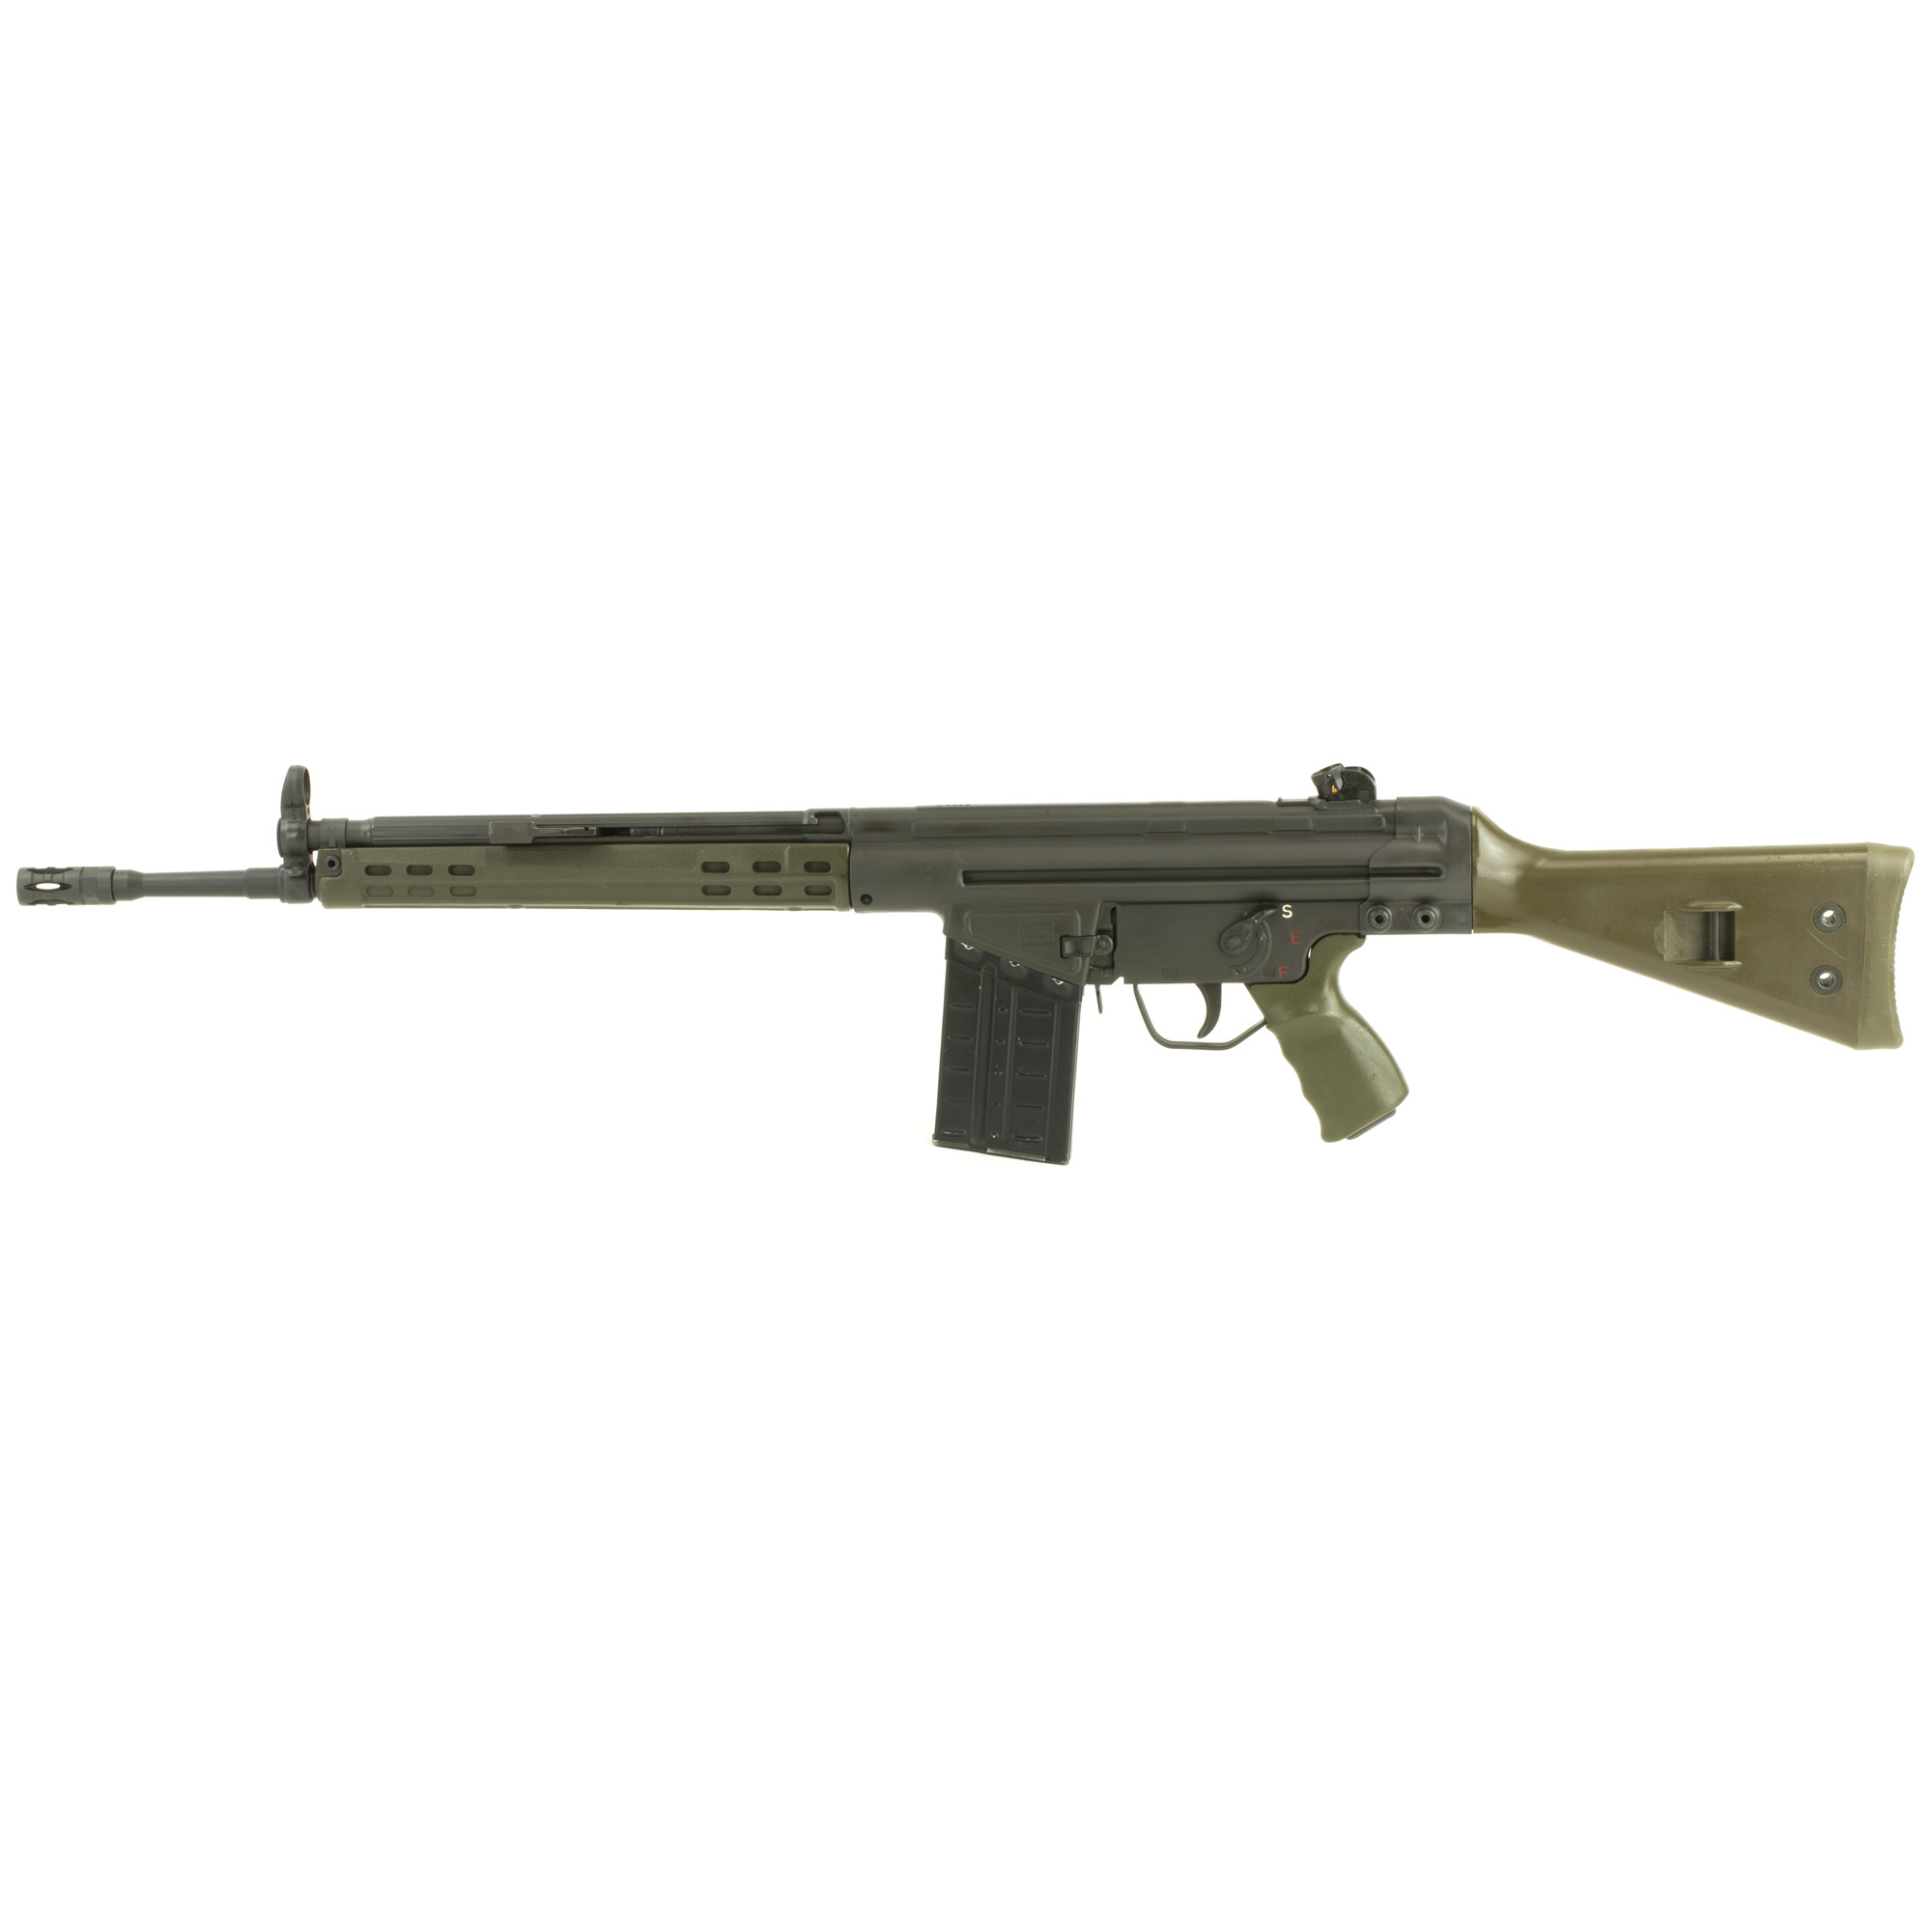 """The GI rifle features a Parkerized finish with classic green furniture"""" 18"""" tapered barrel and a classic """"SEF"""" steel lower. The removal of the precision-welded top rail allows the use of original claw mounts and carry handles."""